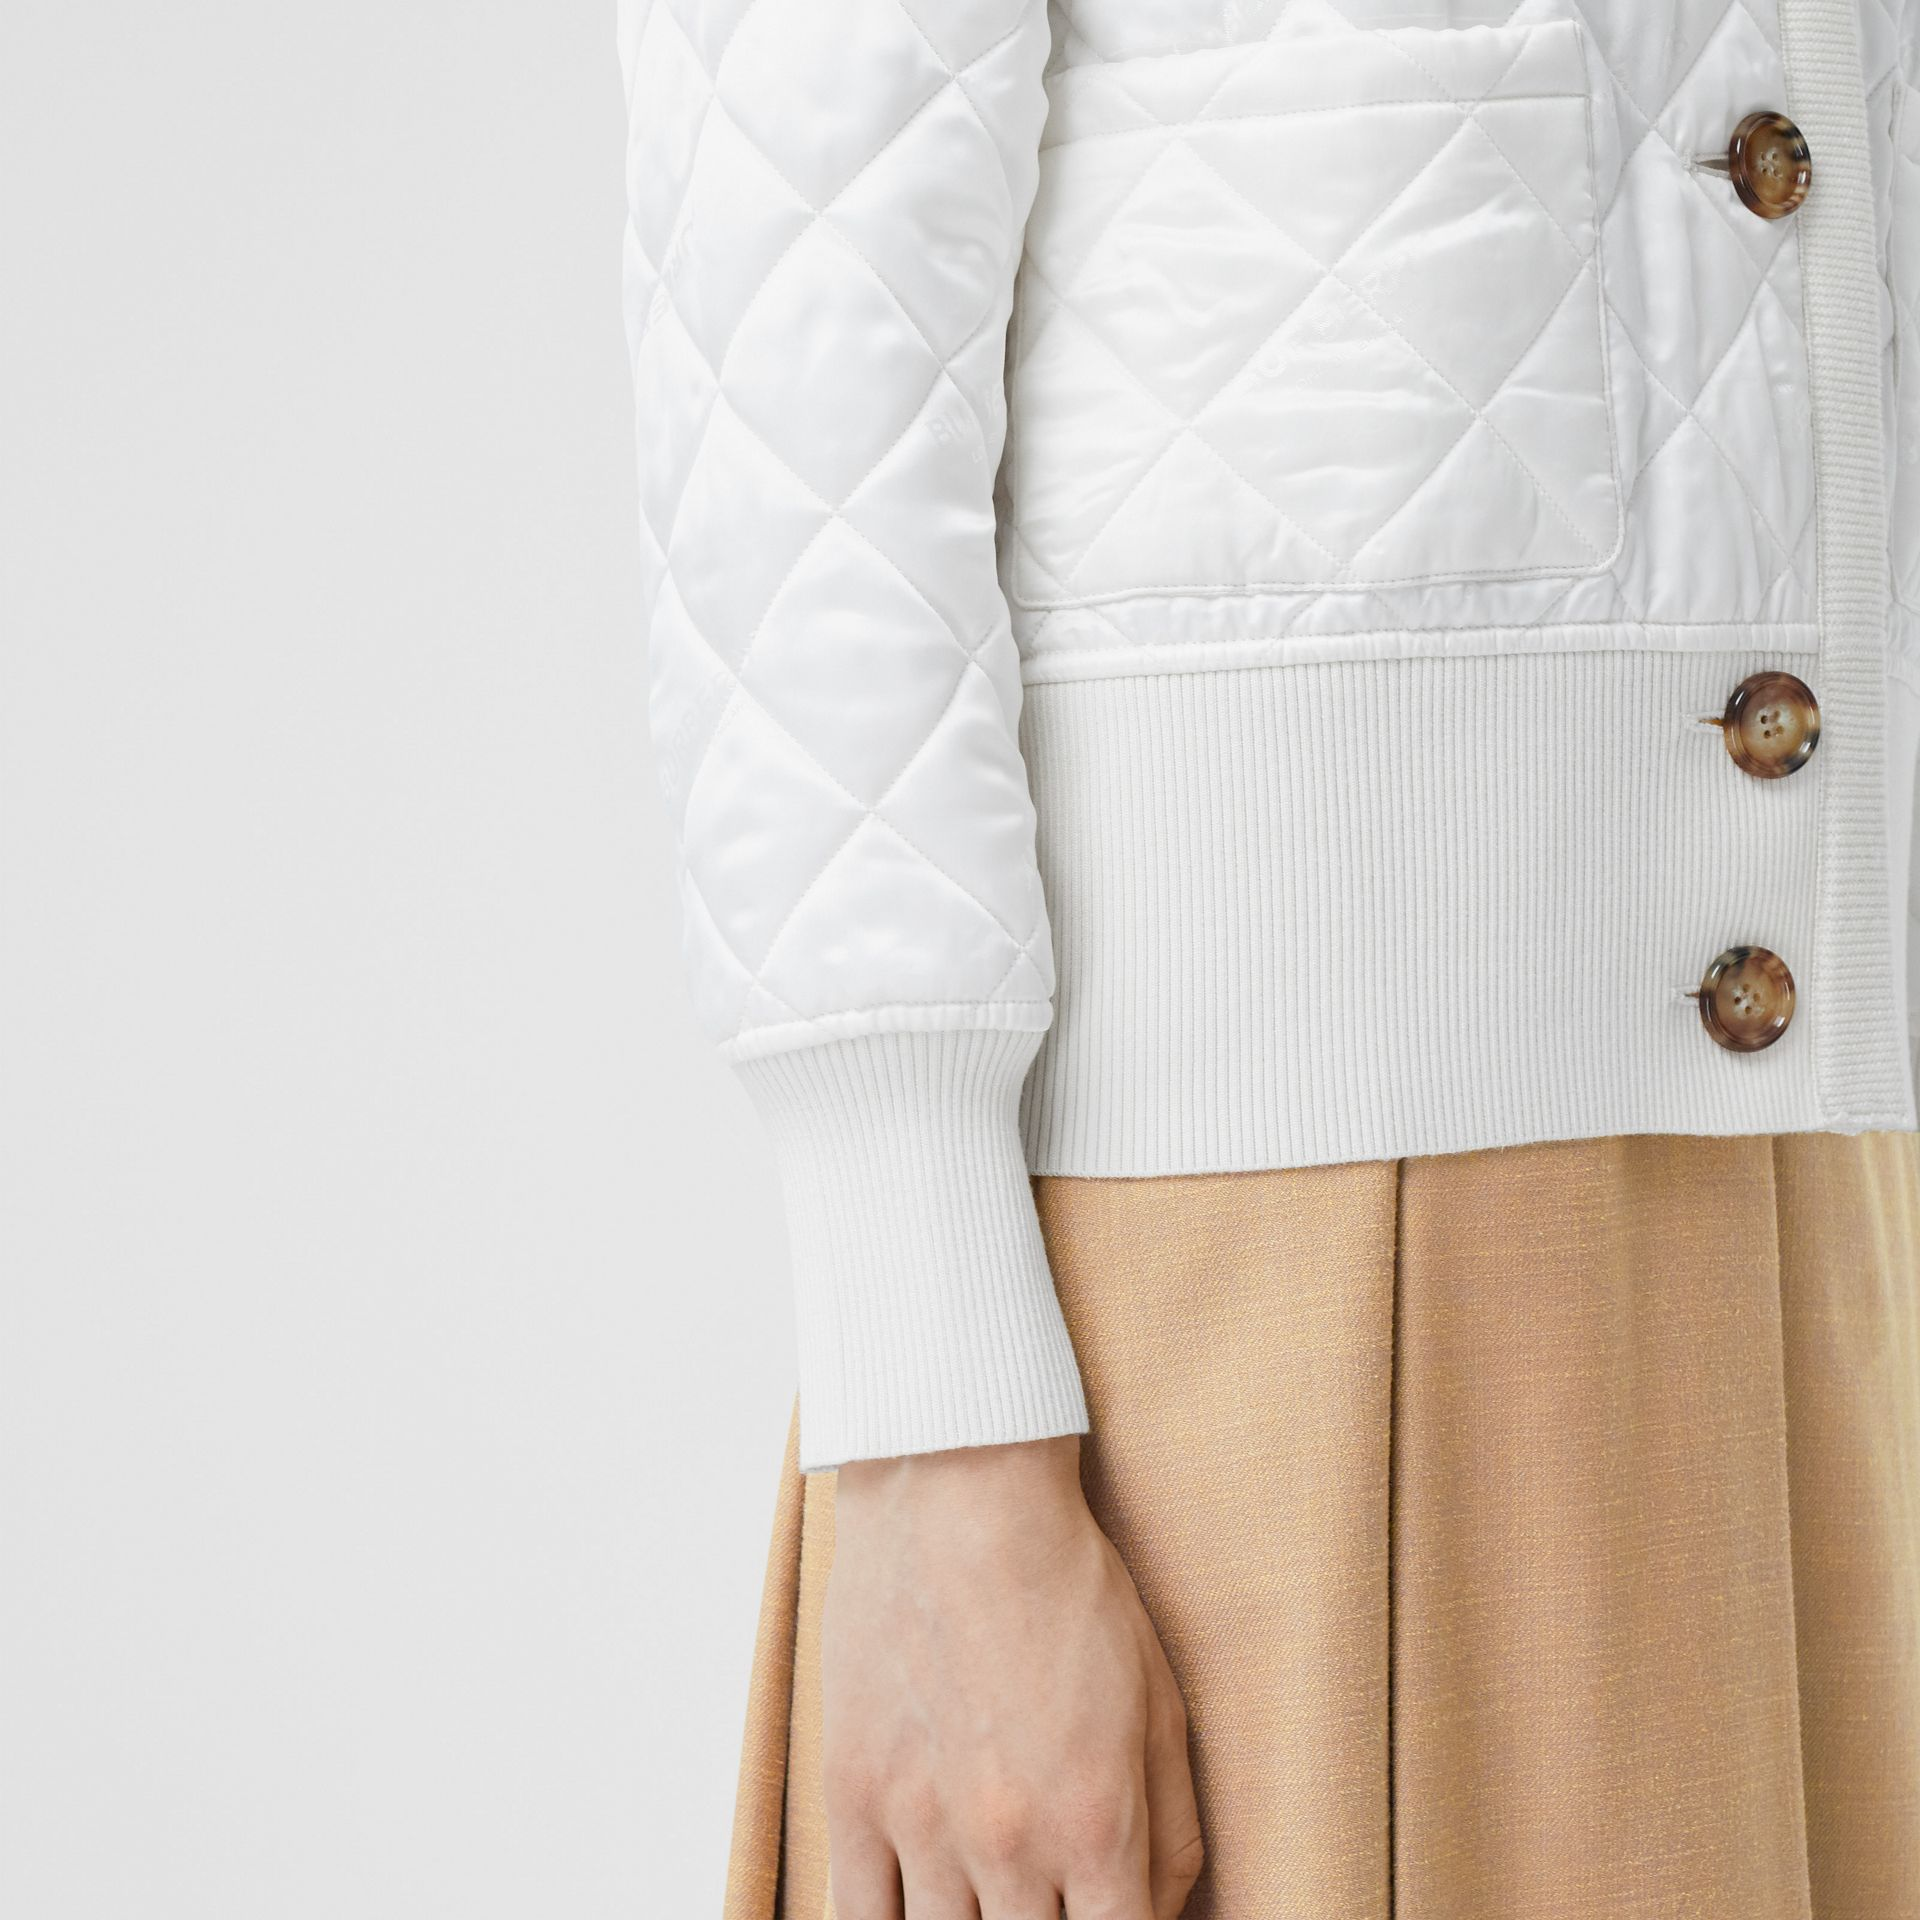 Logo Jacquard Diamond Quilted and Wool Blend Jacket in White - Women | Burberry Australia - gallery image 4